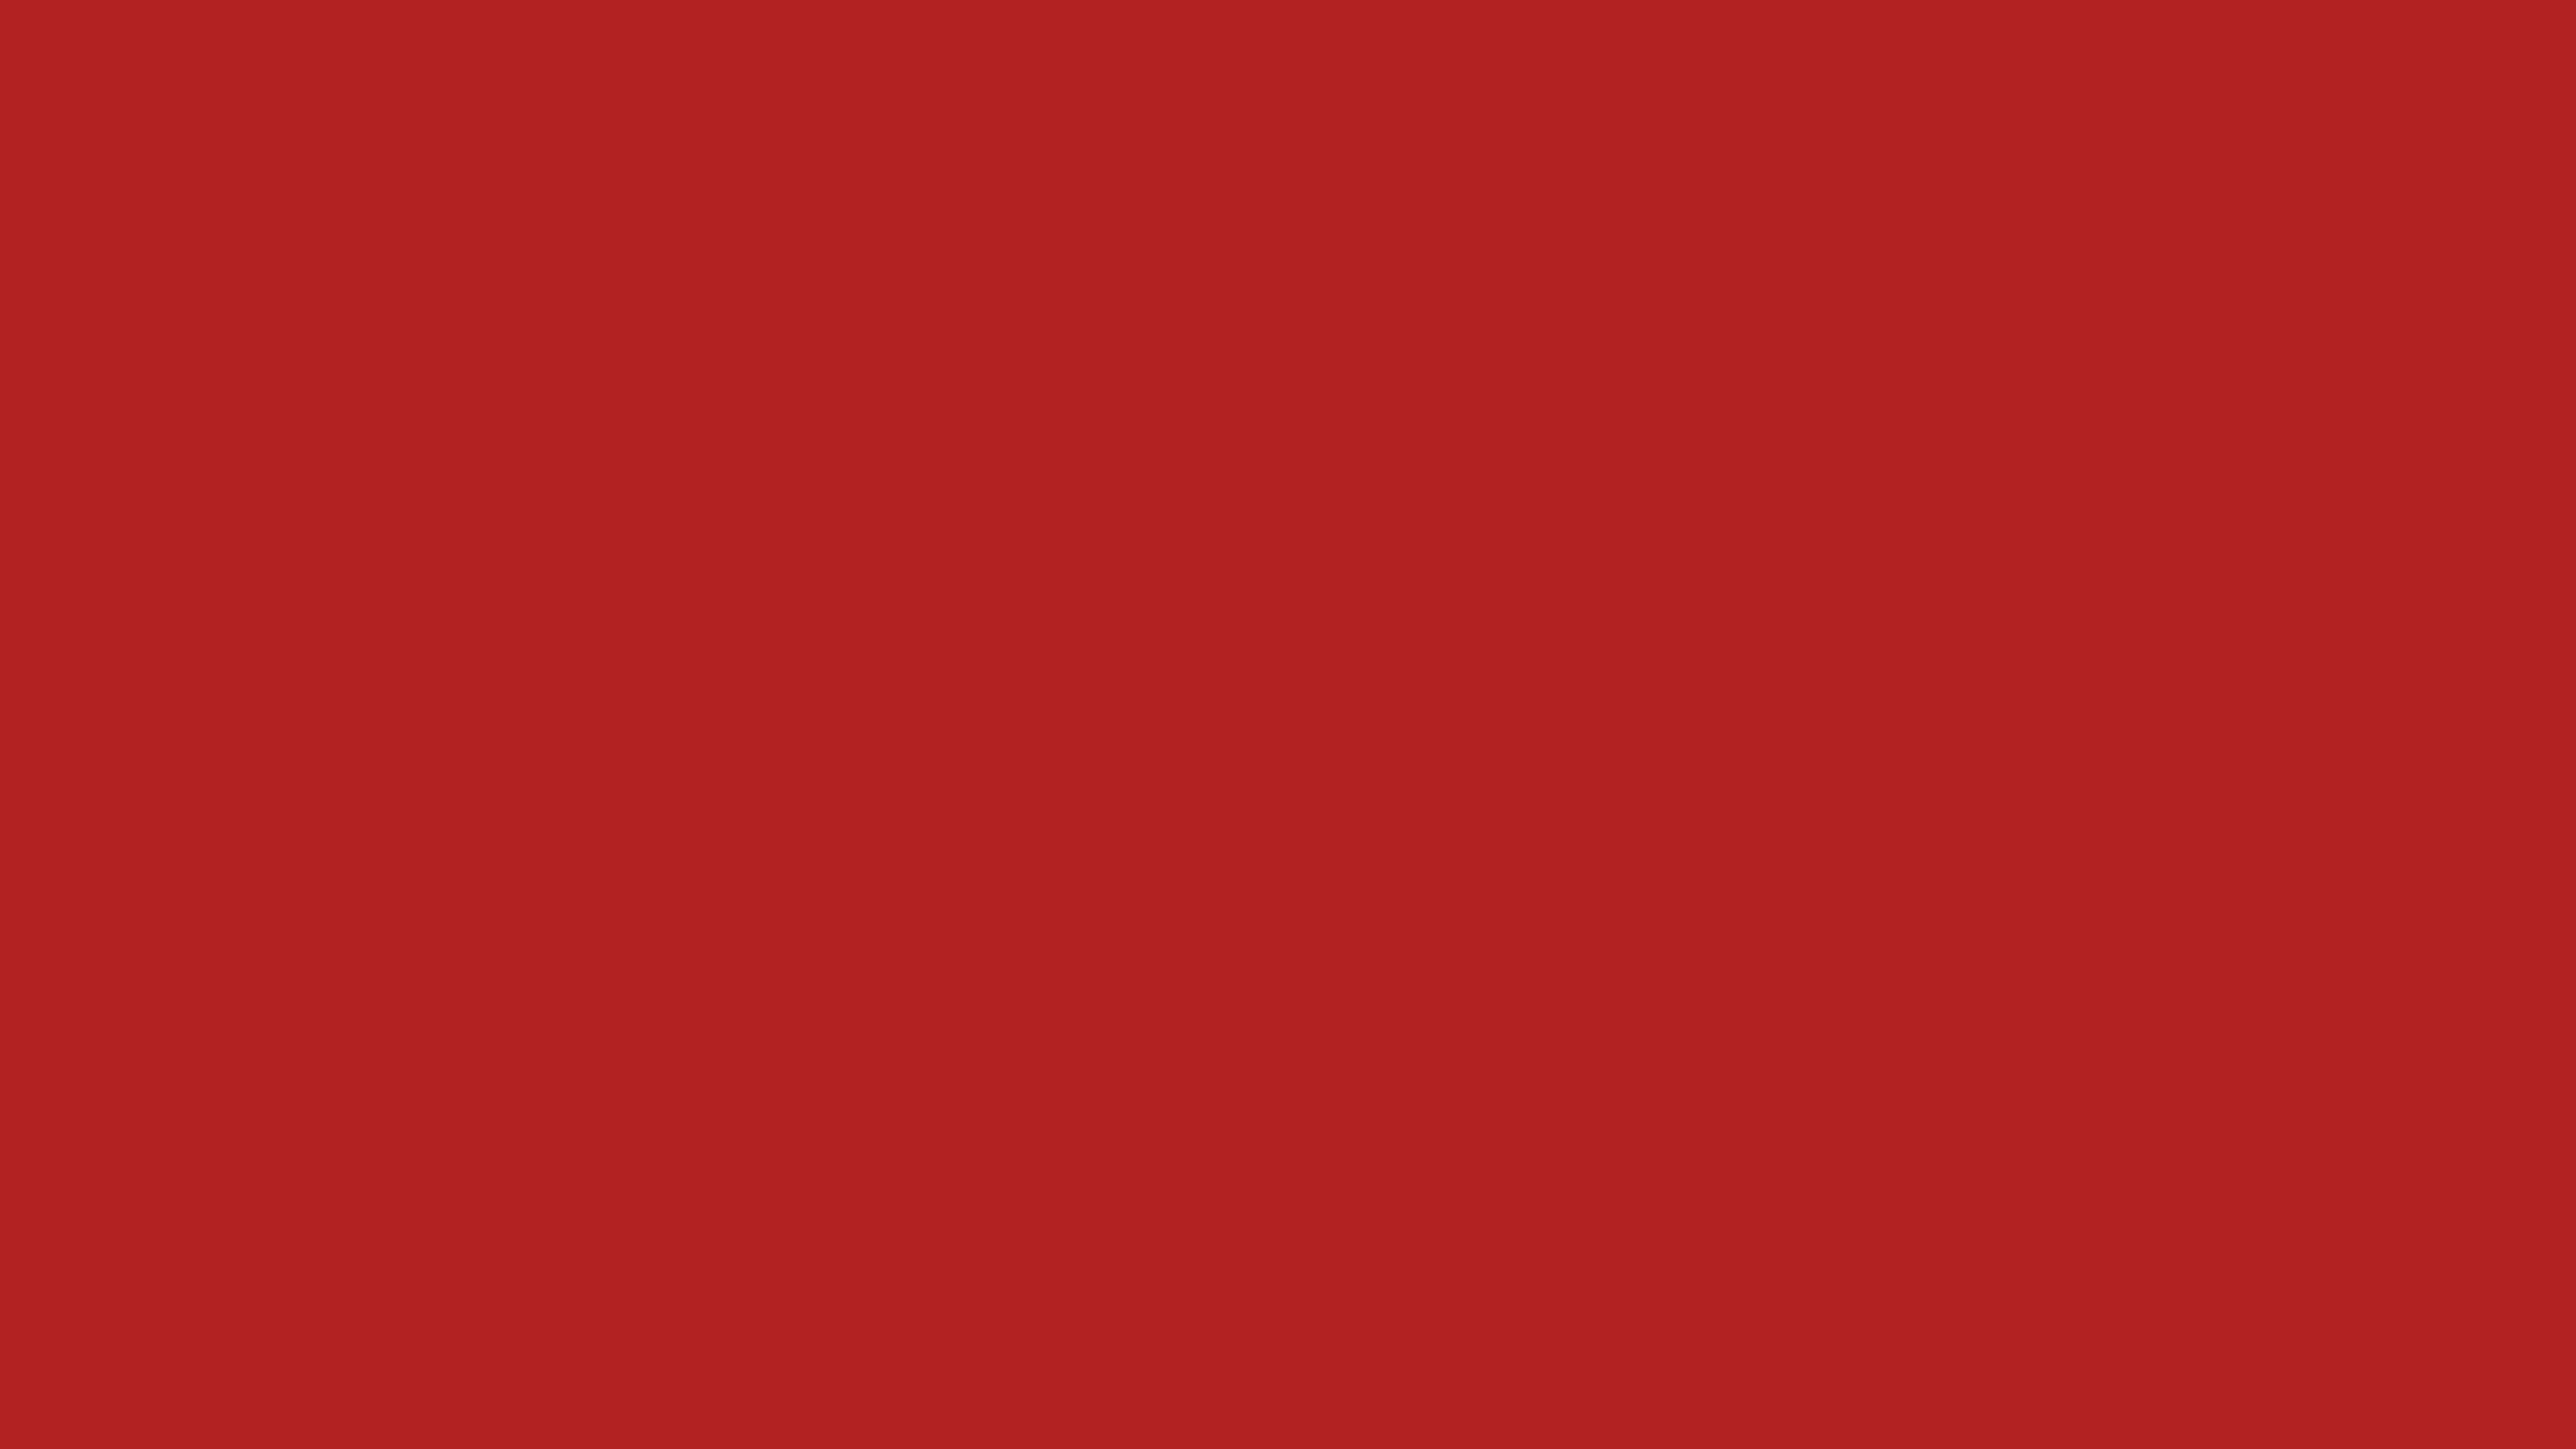 5120x2880 Firebrick Solid Color Background